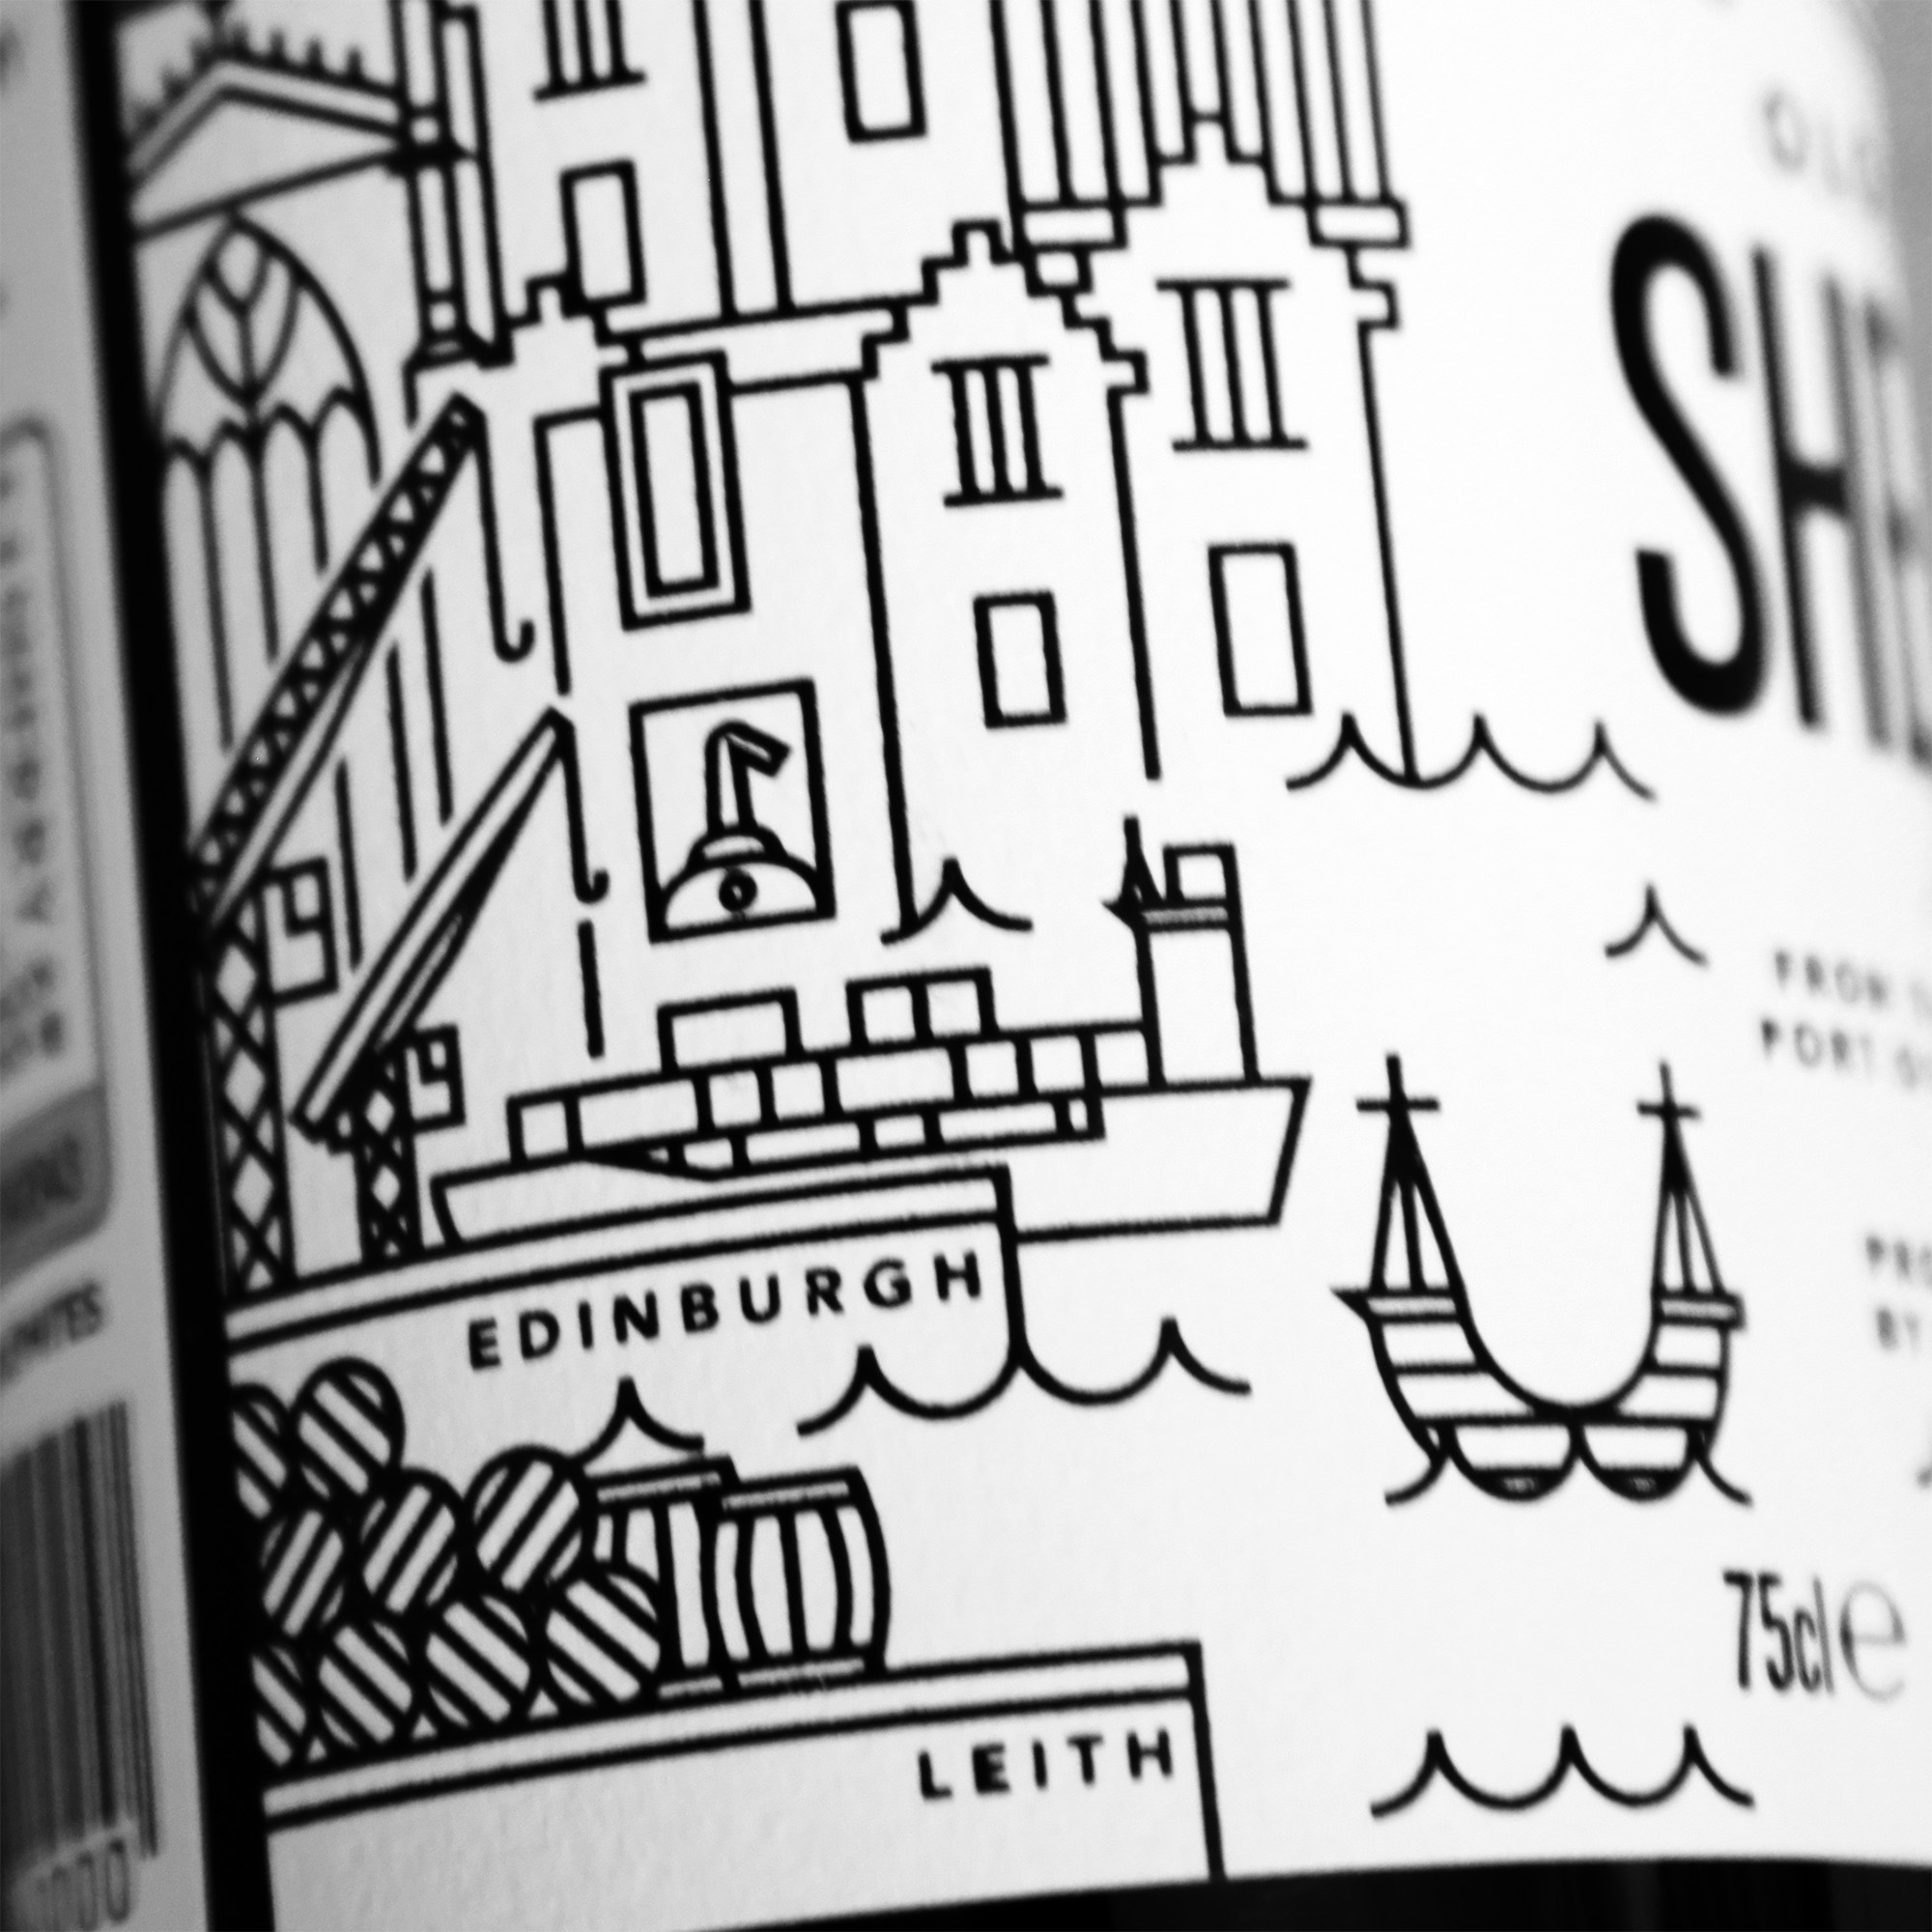 - Historically, full casks of sherry were shipped to Leith and then decanted into locally-made bottles. Whisky merchants then used the empty casks to mature their spirit.